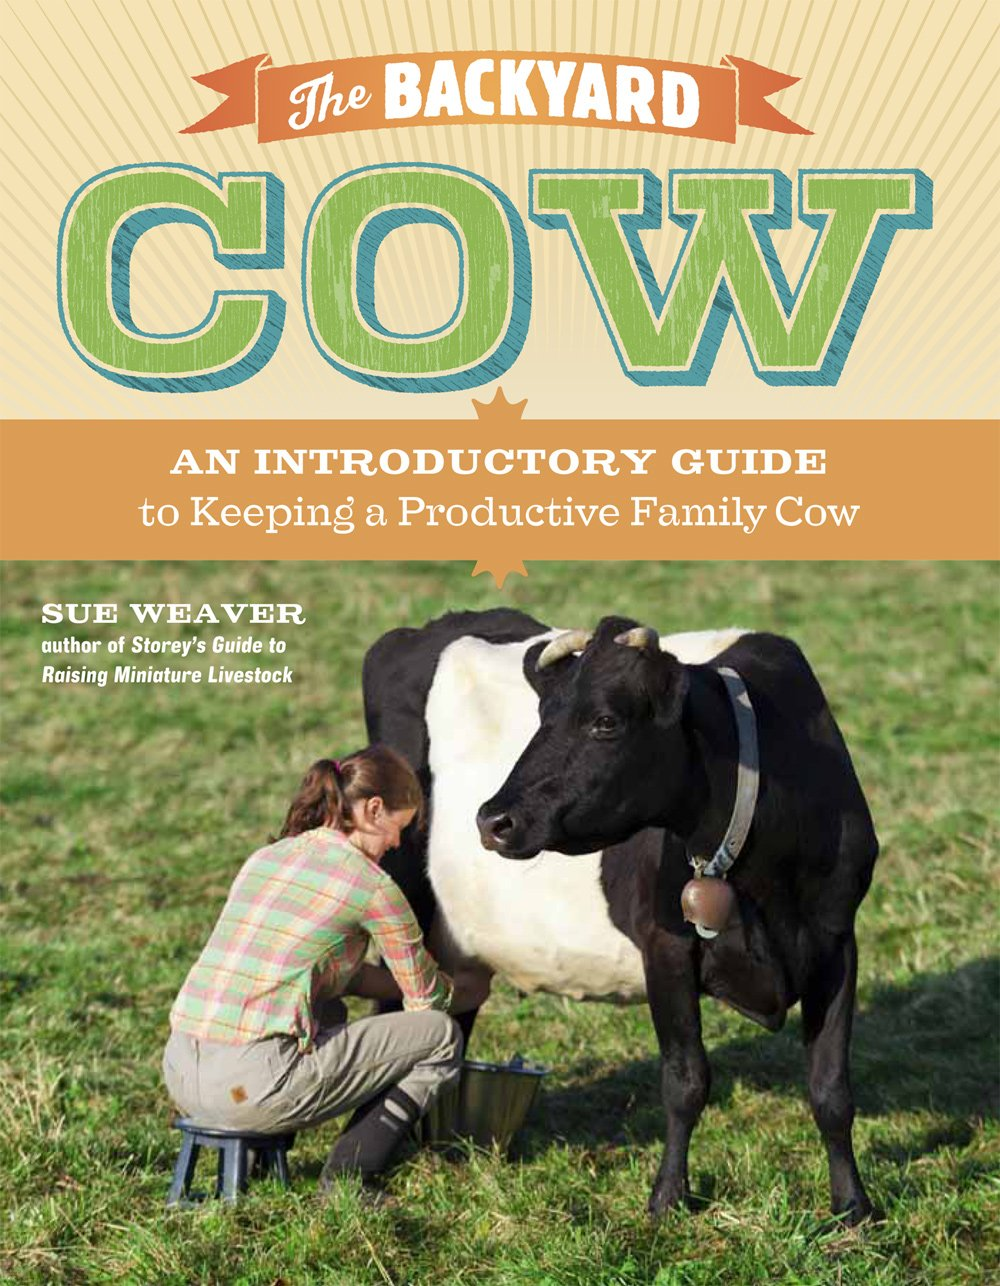 The Backyard Cow: An Introductory Guide to Keeping a Productive Family Cow pdf